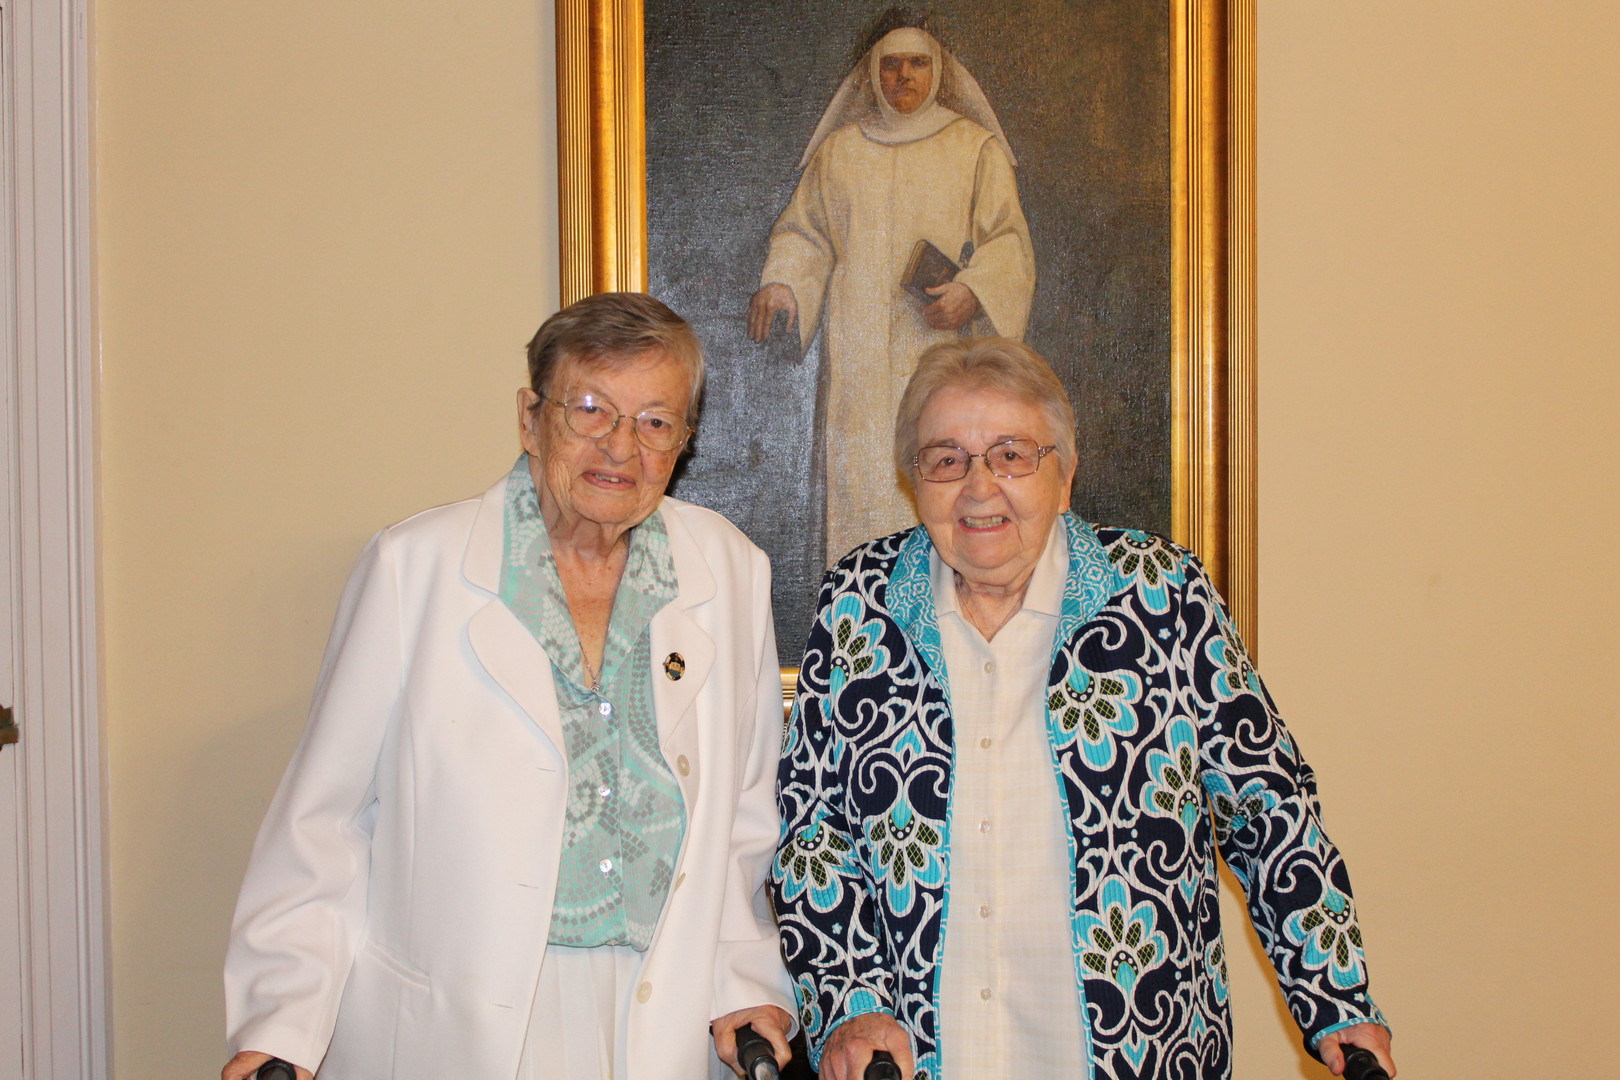 Sisters Molly Dower and Theresa Lynch